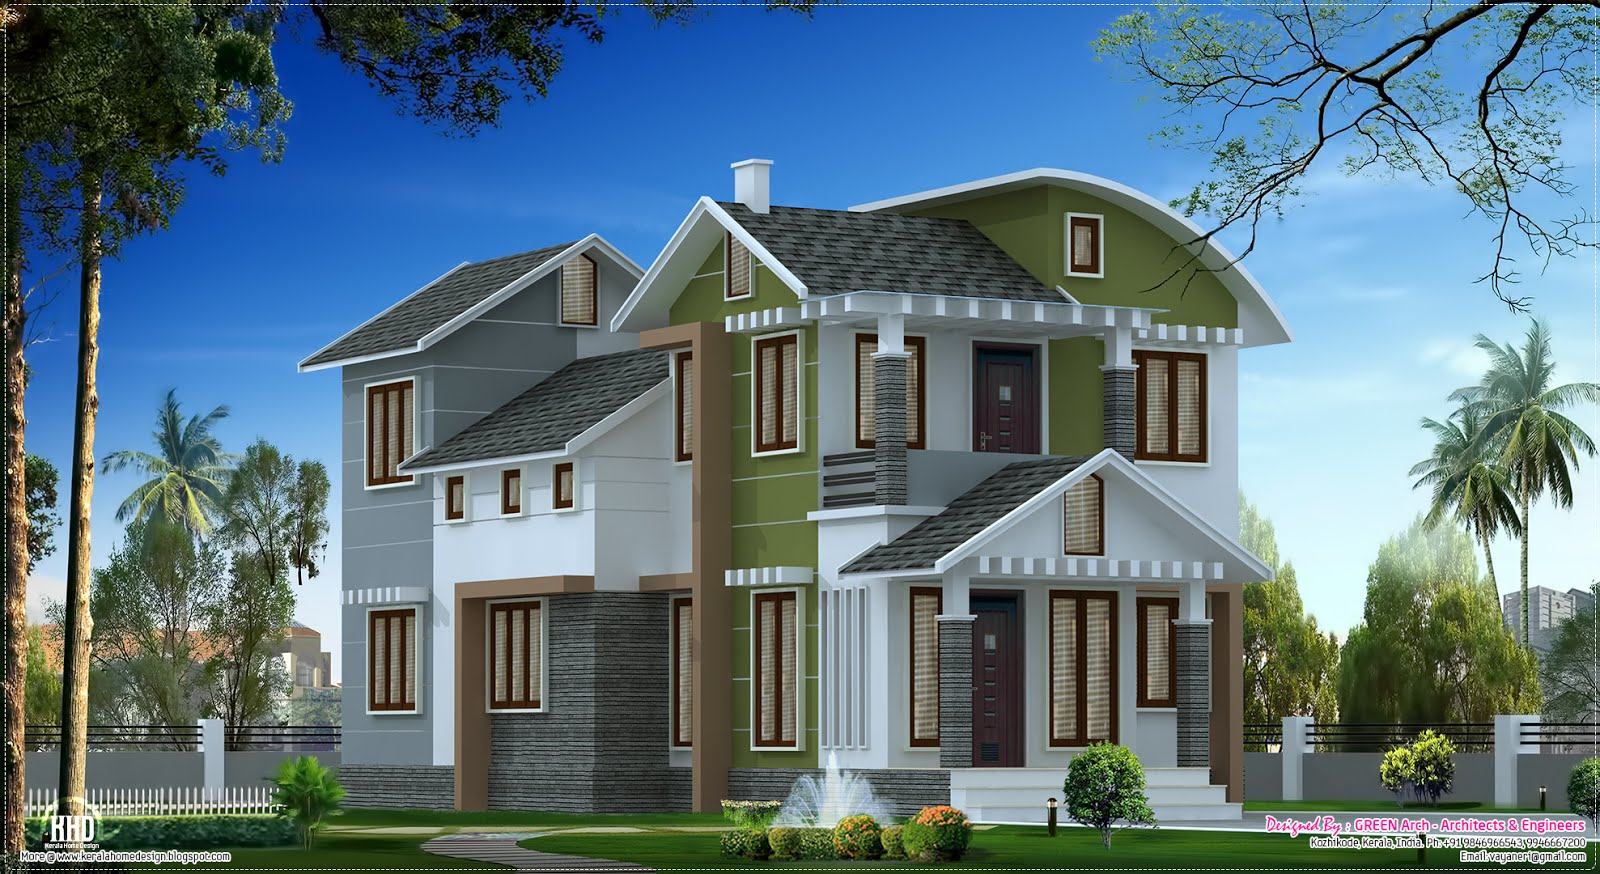 N Home Elevation Images : Home villas front elevation n design images houses plans